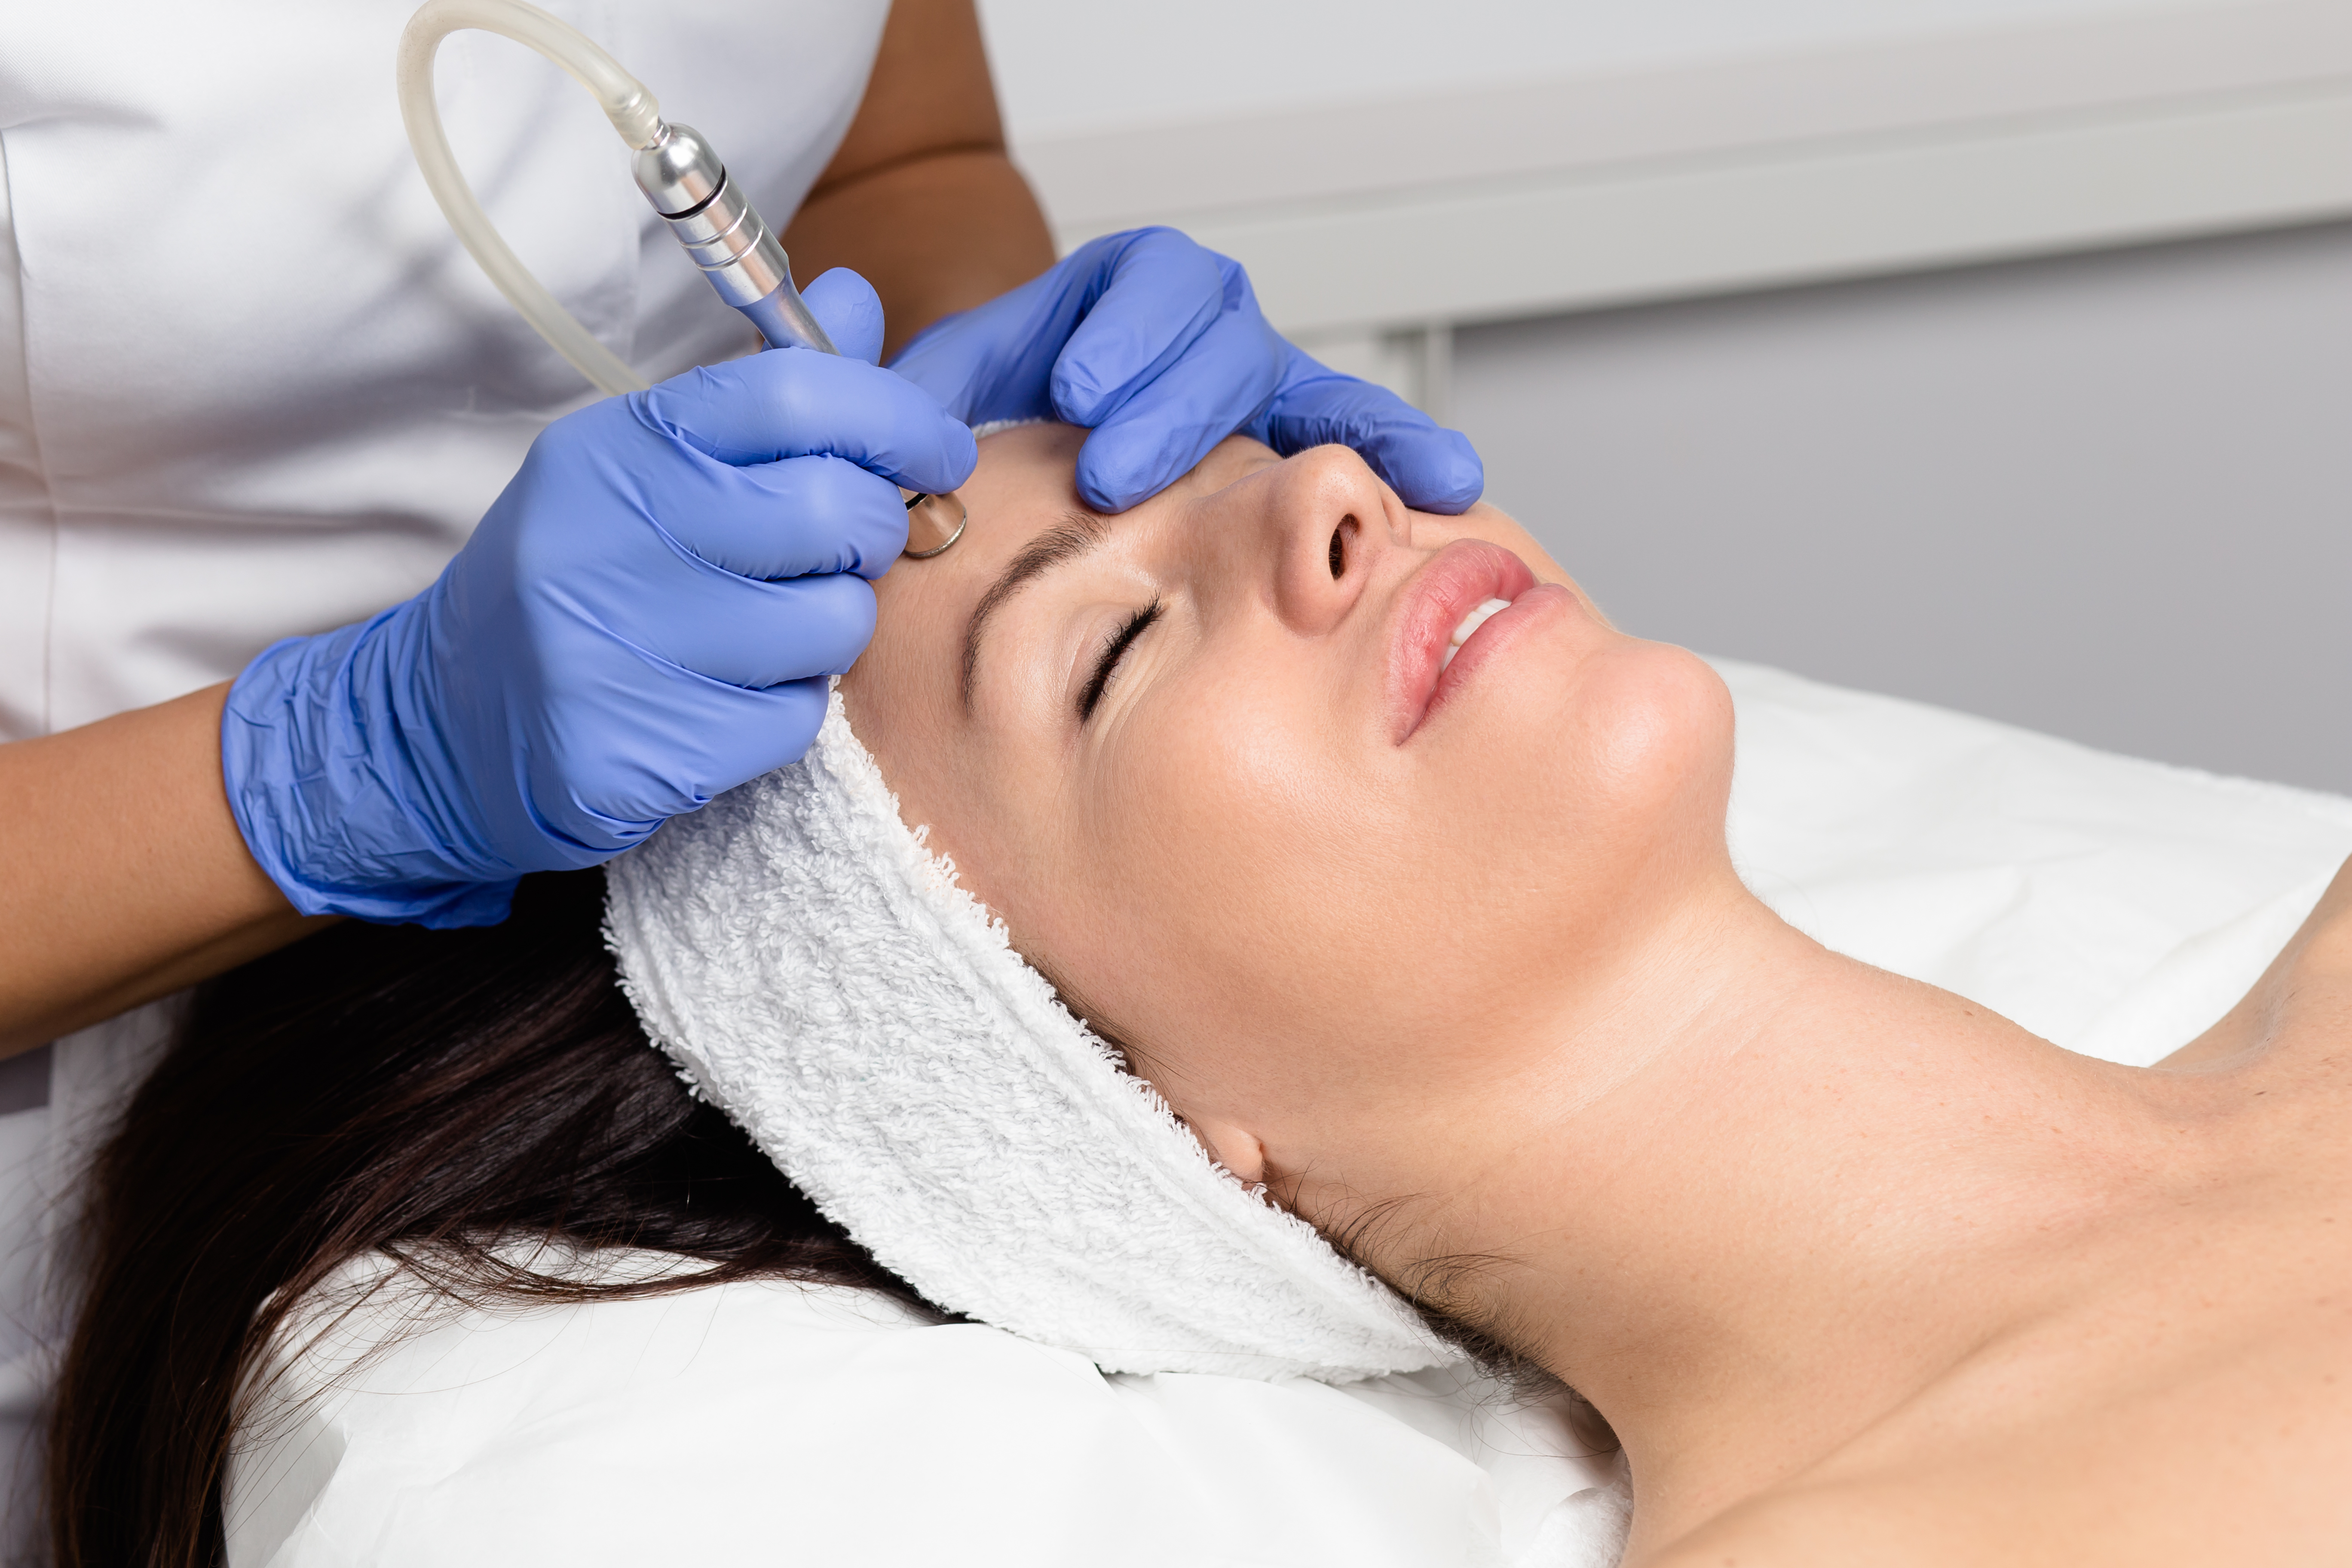 Brown haired girl receiving microdermabrasion treatment in a clinic